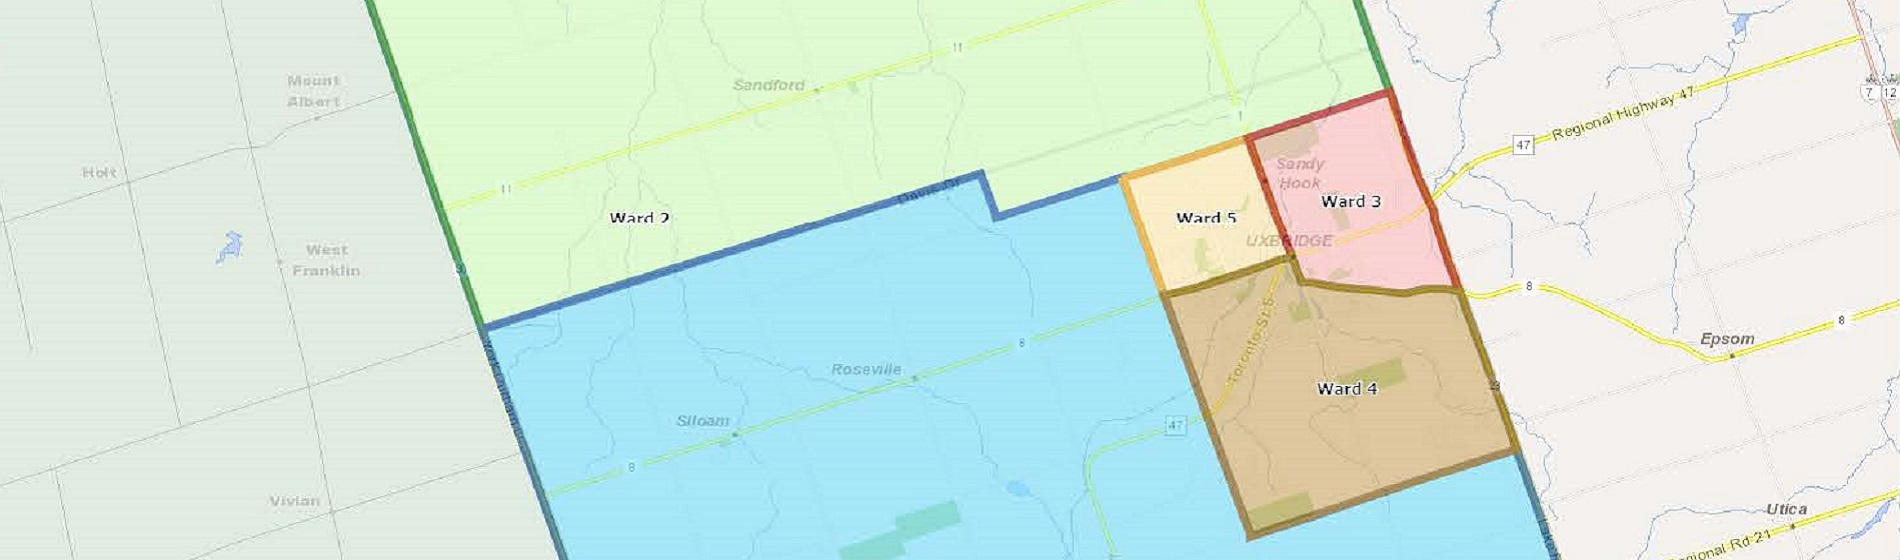 map of wards of the township of uxbridge